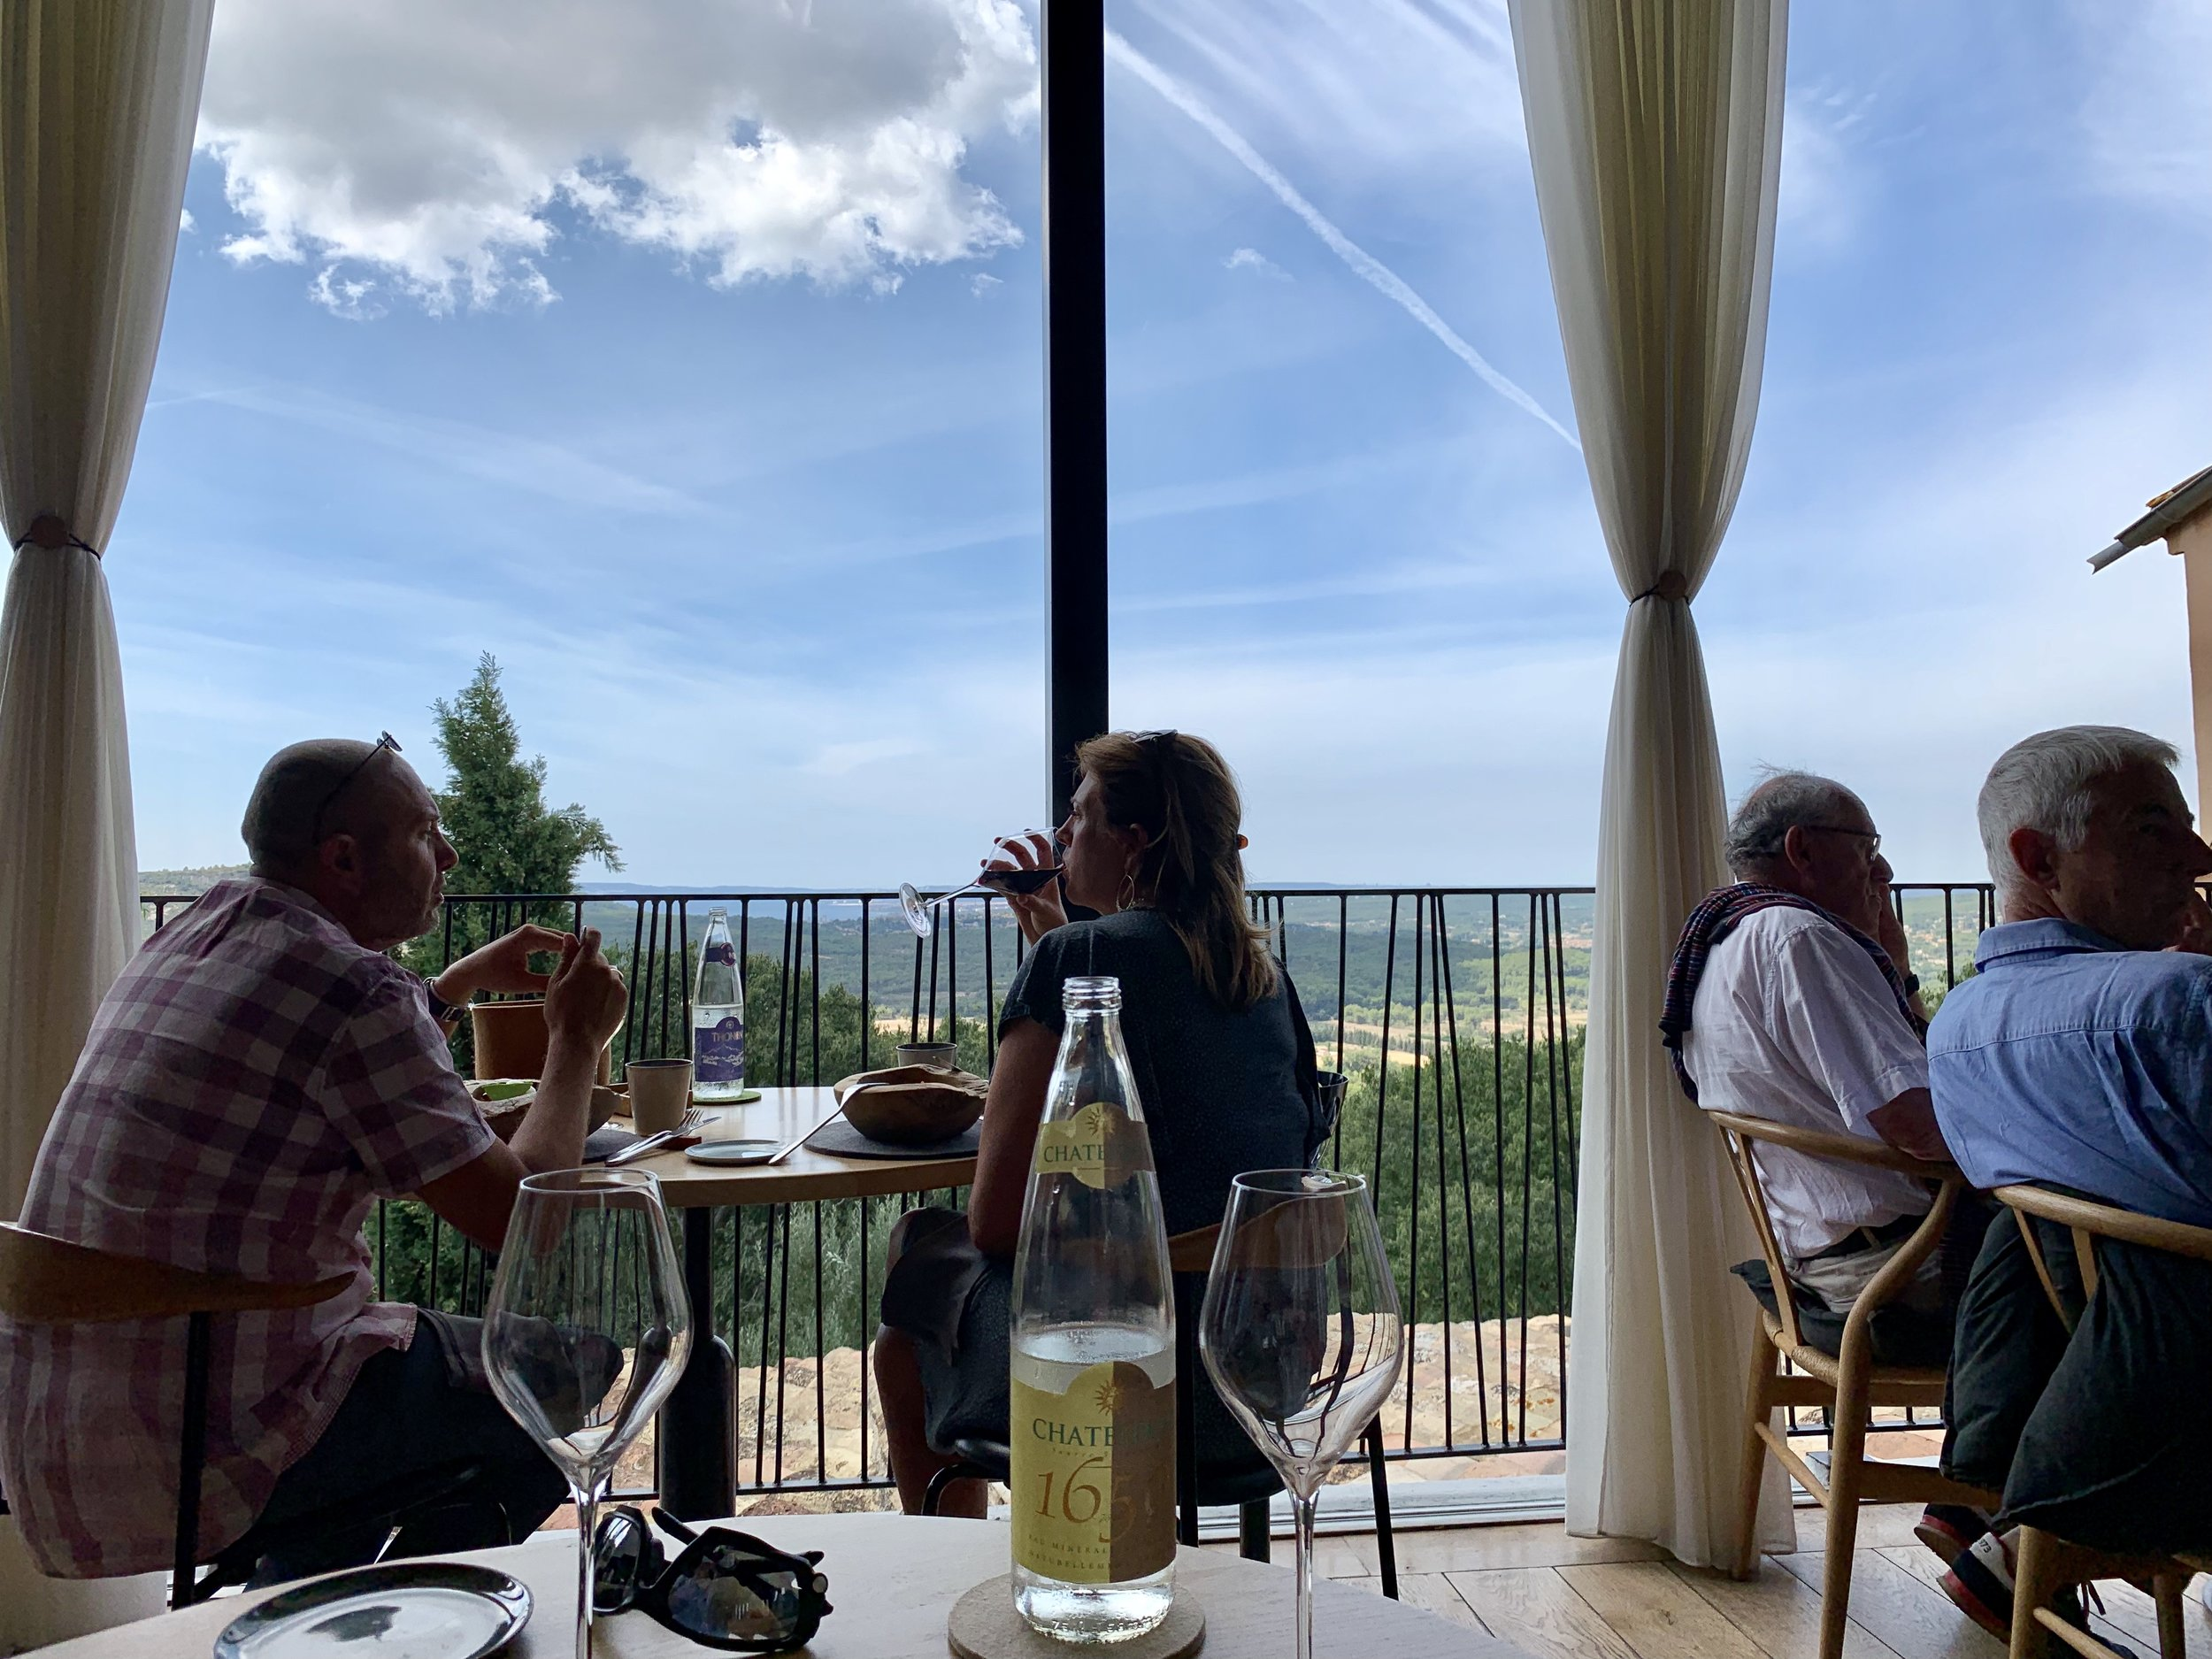 Sitting down to a decadent lunch at Dan B., the Table de Ventabren, in Ventabren, Provence, France. August 21, 2019.